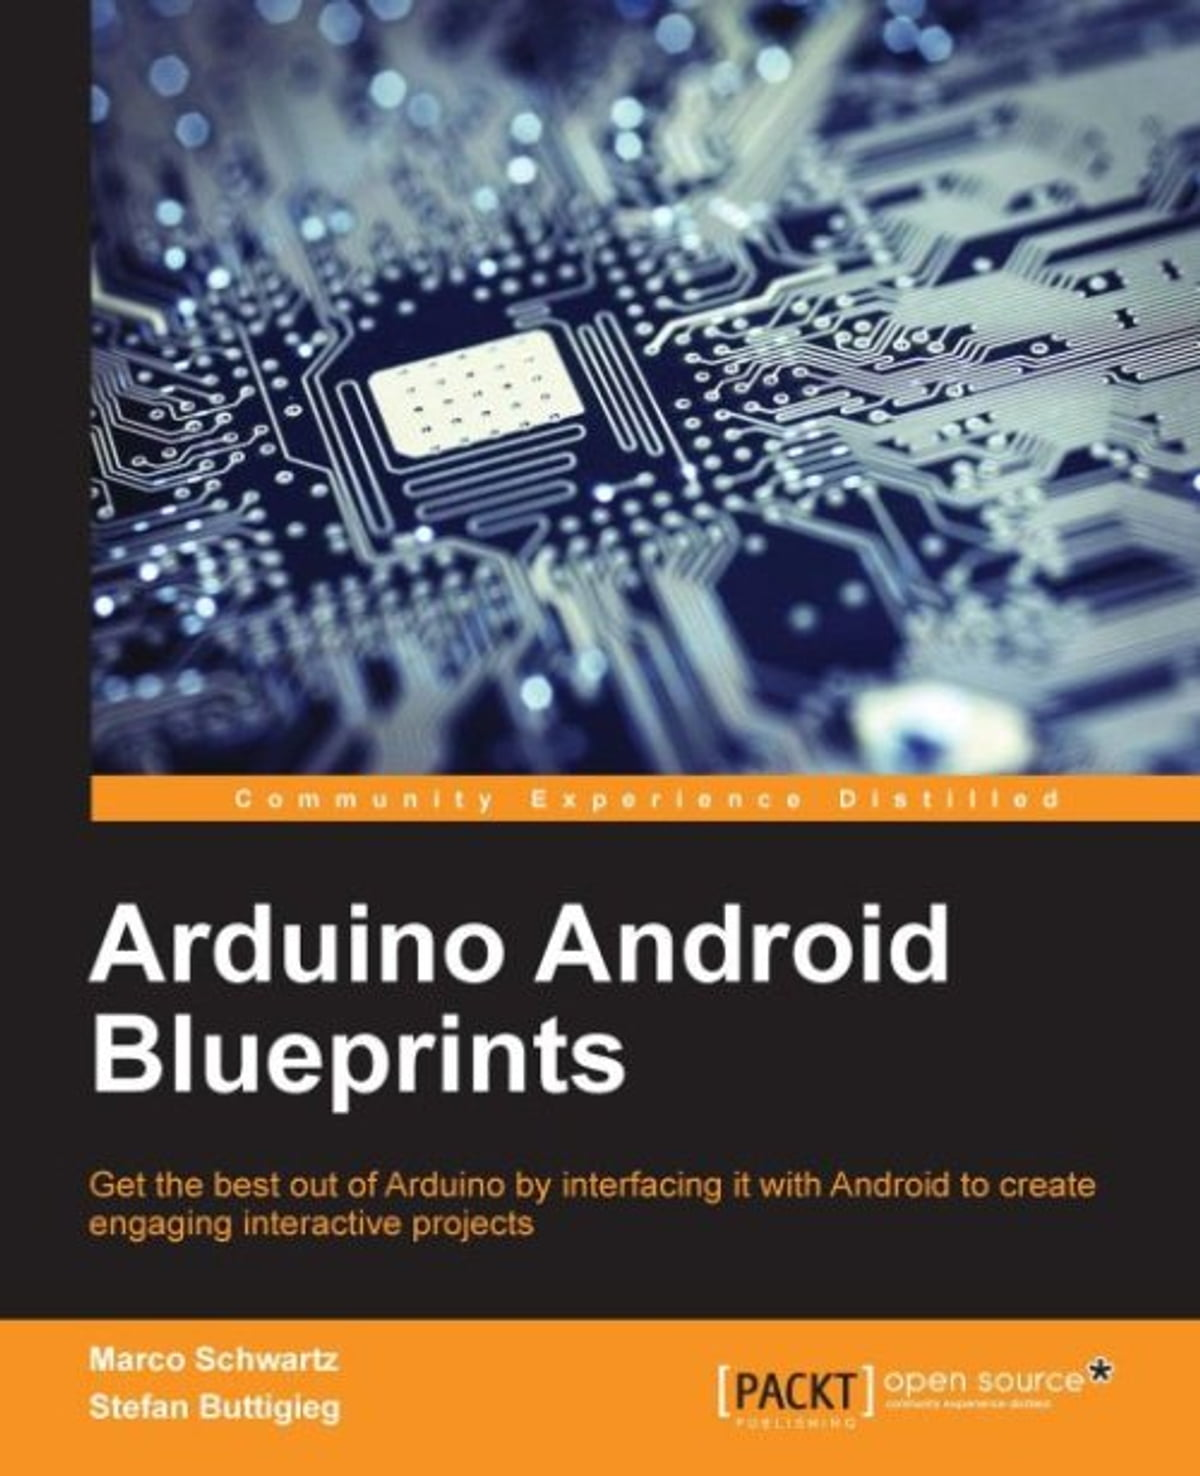 https://kbimages1-a.akamaihd.net/c1197e8c-182c-469d-8ffb-fefd1e3942ce/1200/1200/False/arduino-android-blueprints-1.jpg